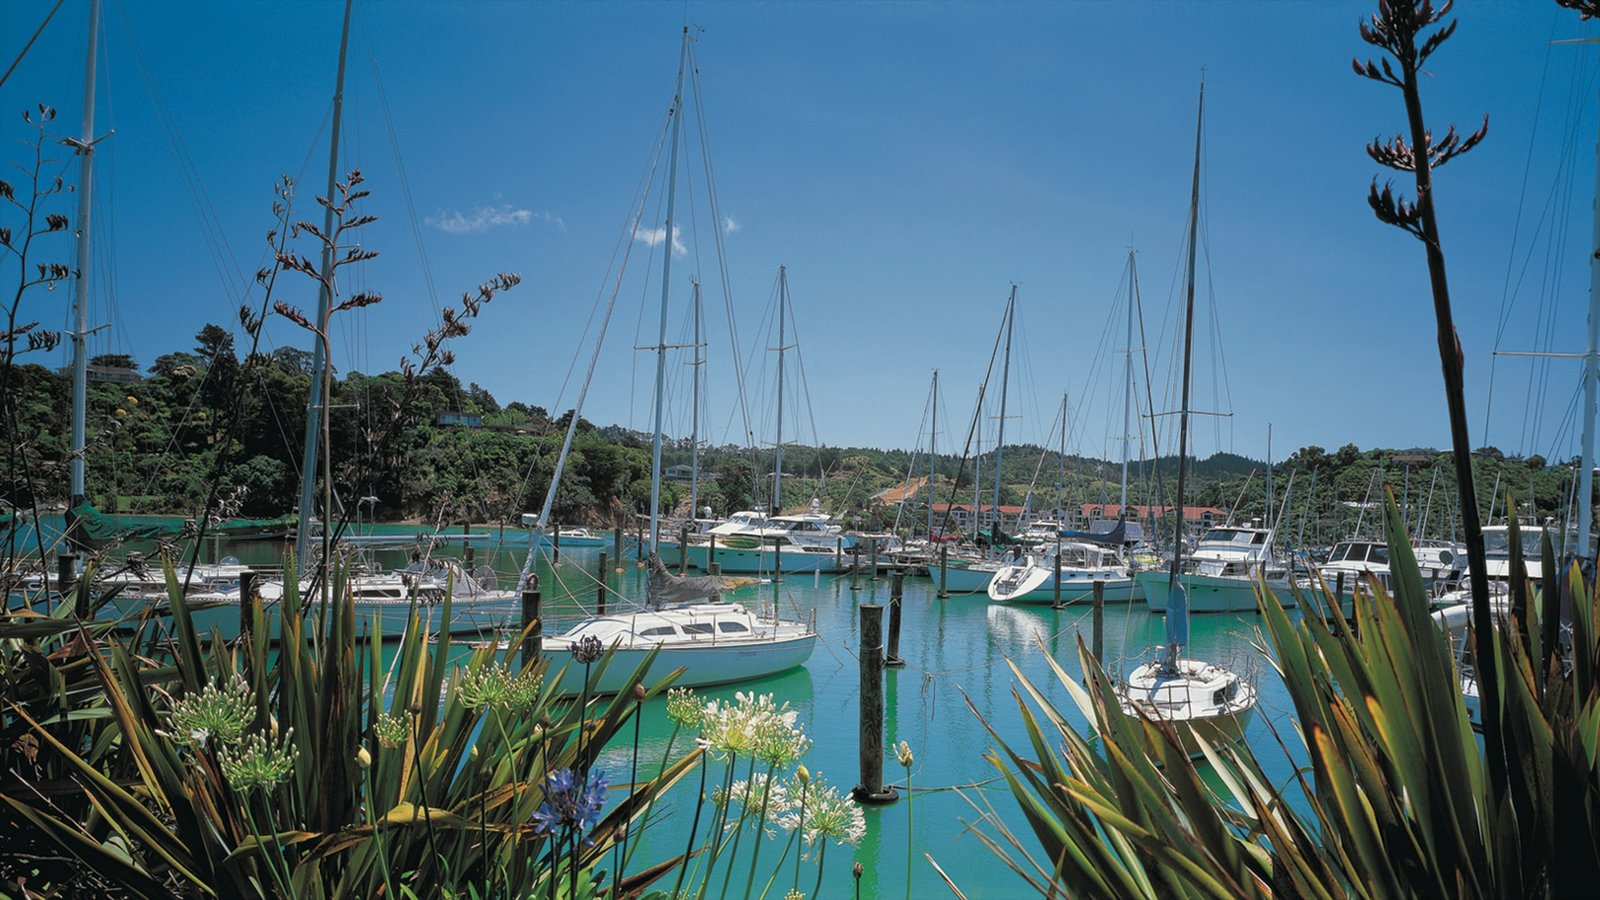 Whangarei featuring boating, sailing and a marina